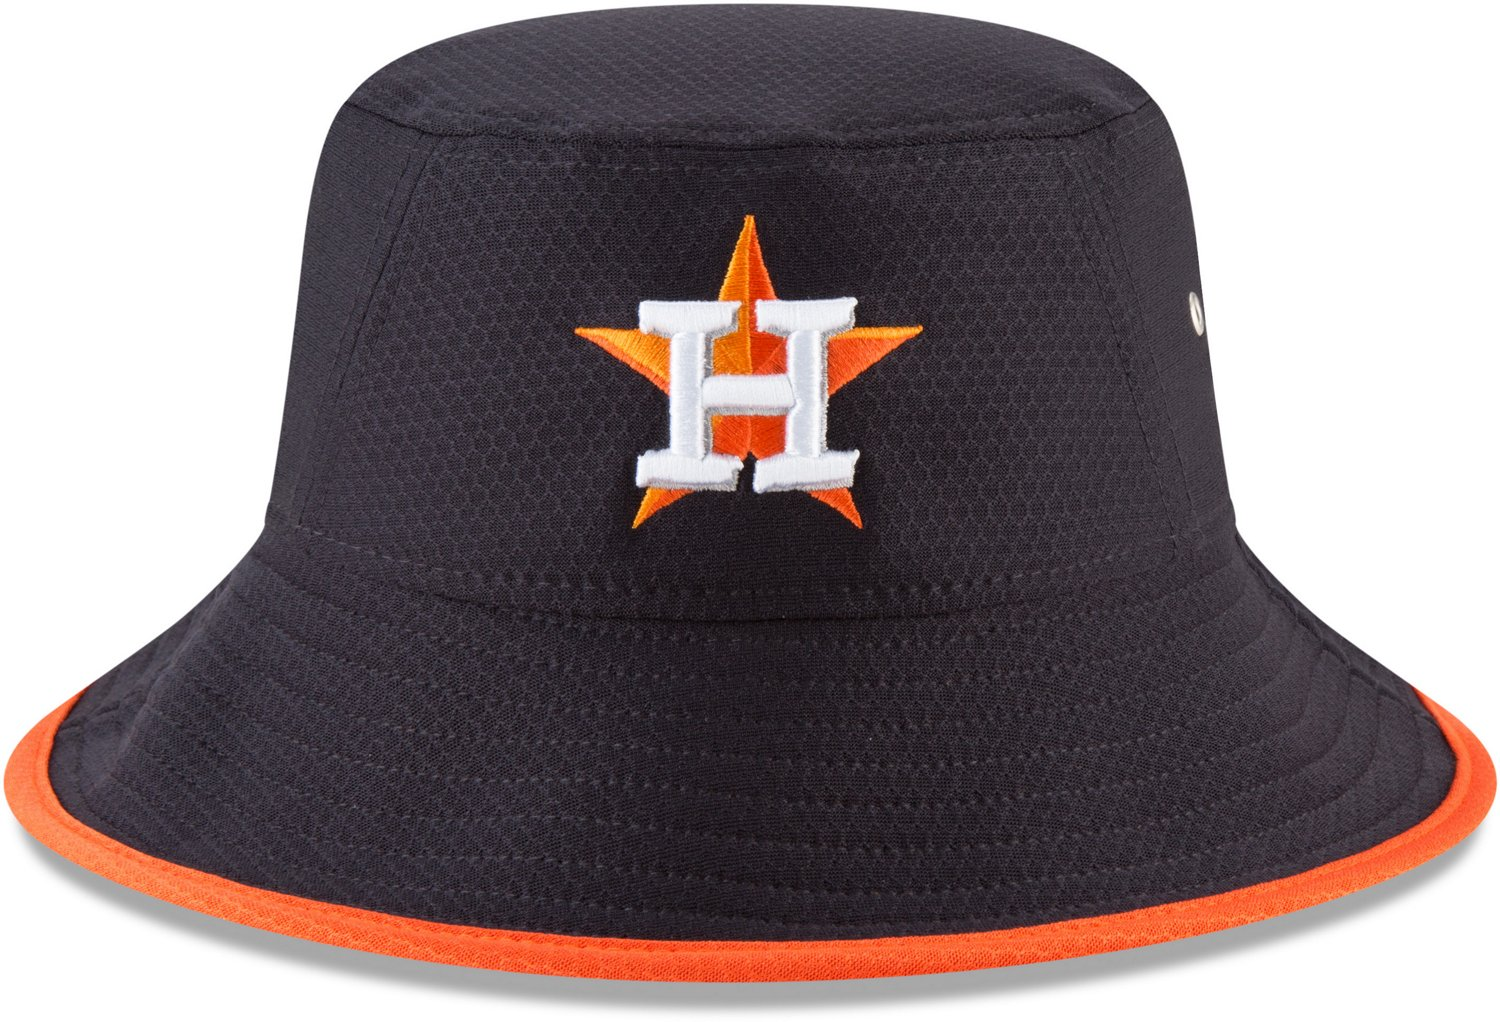 fabadf628db38 Display product reviews for New Era Men s Houston Astros Hex Bucket Hat